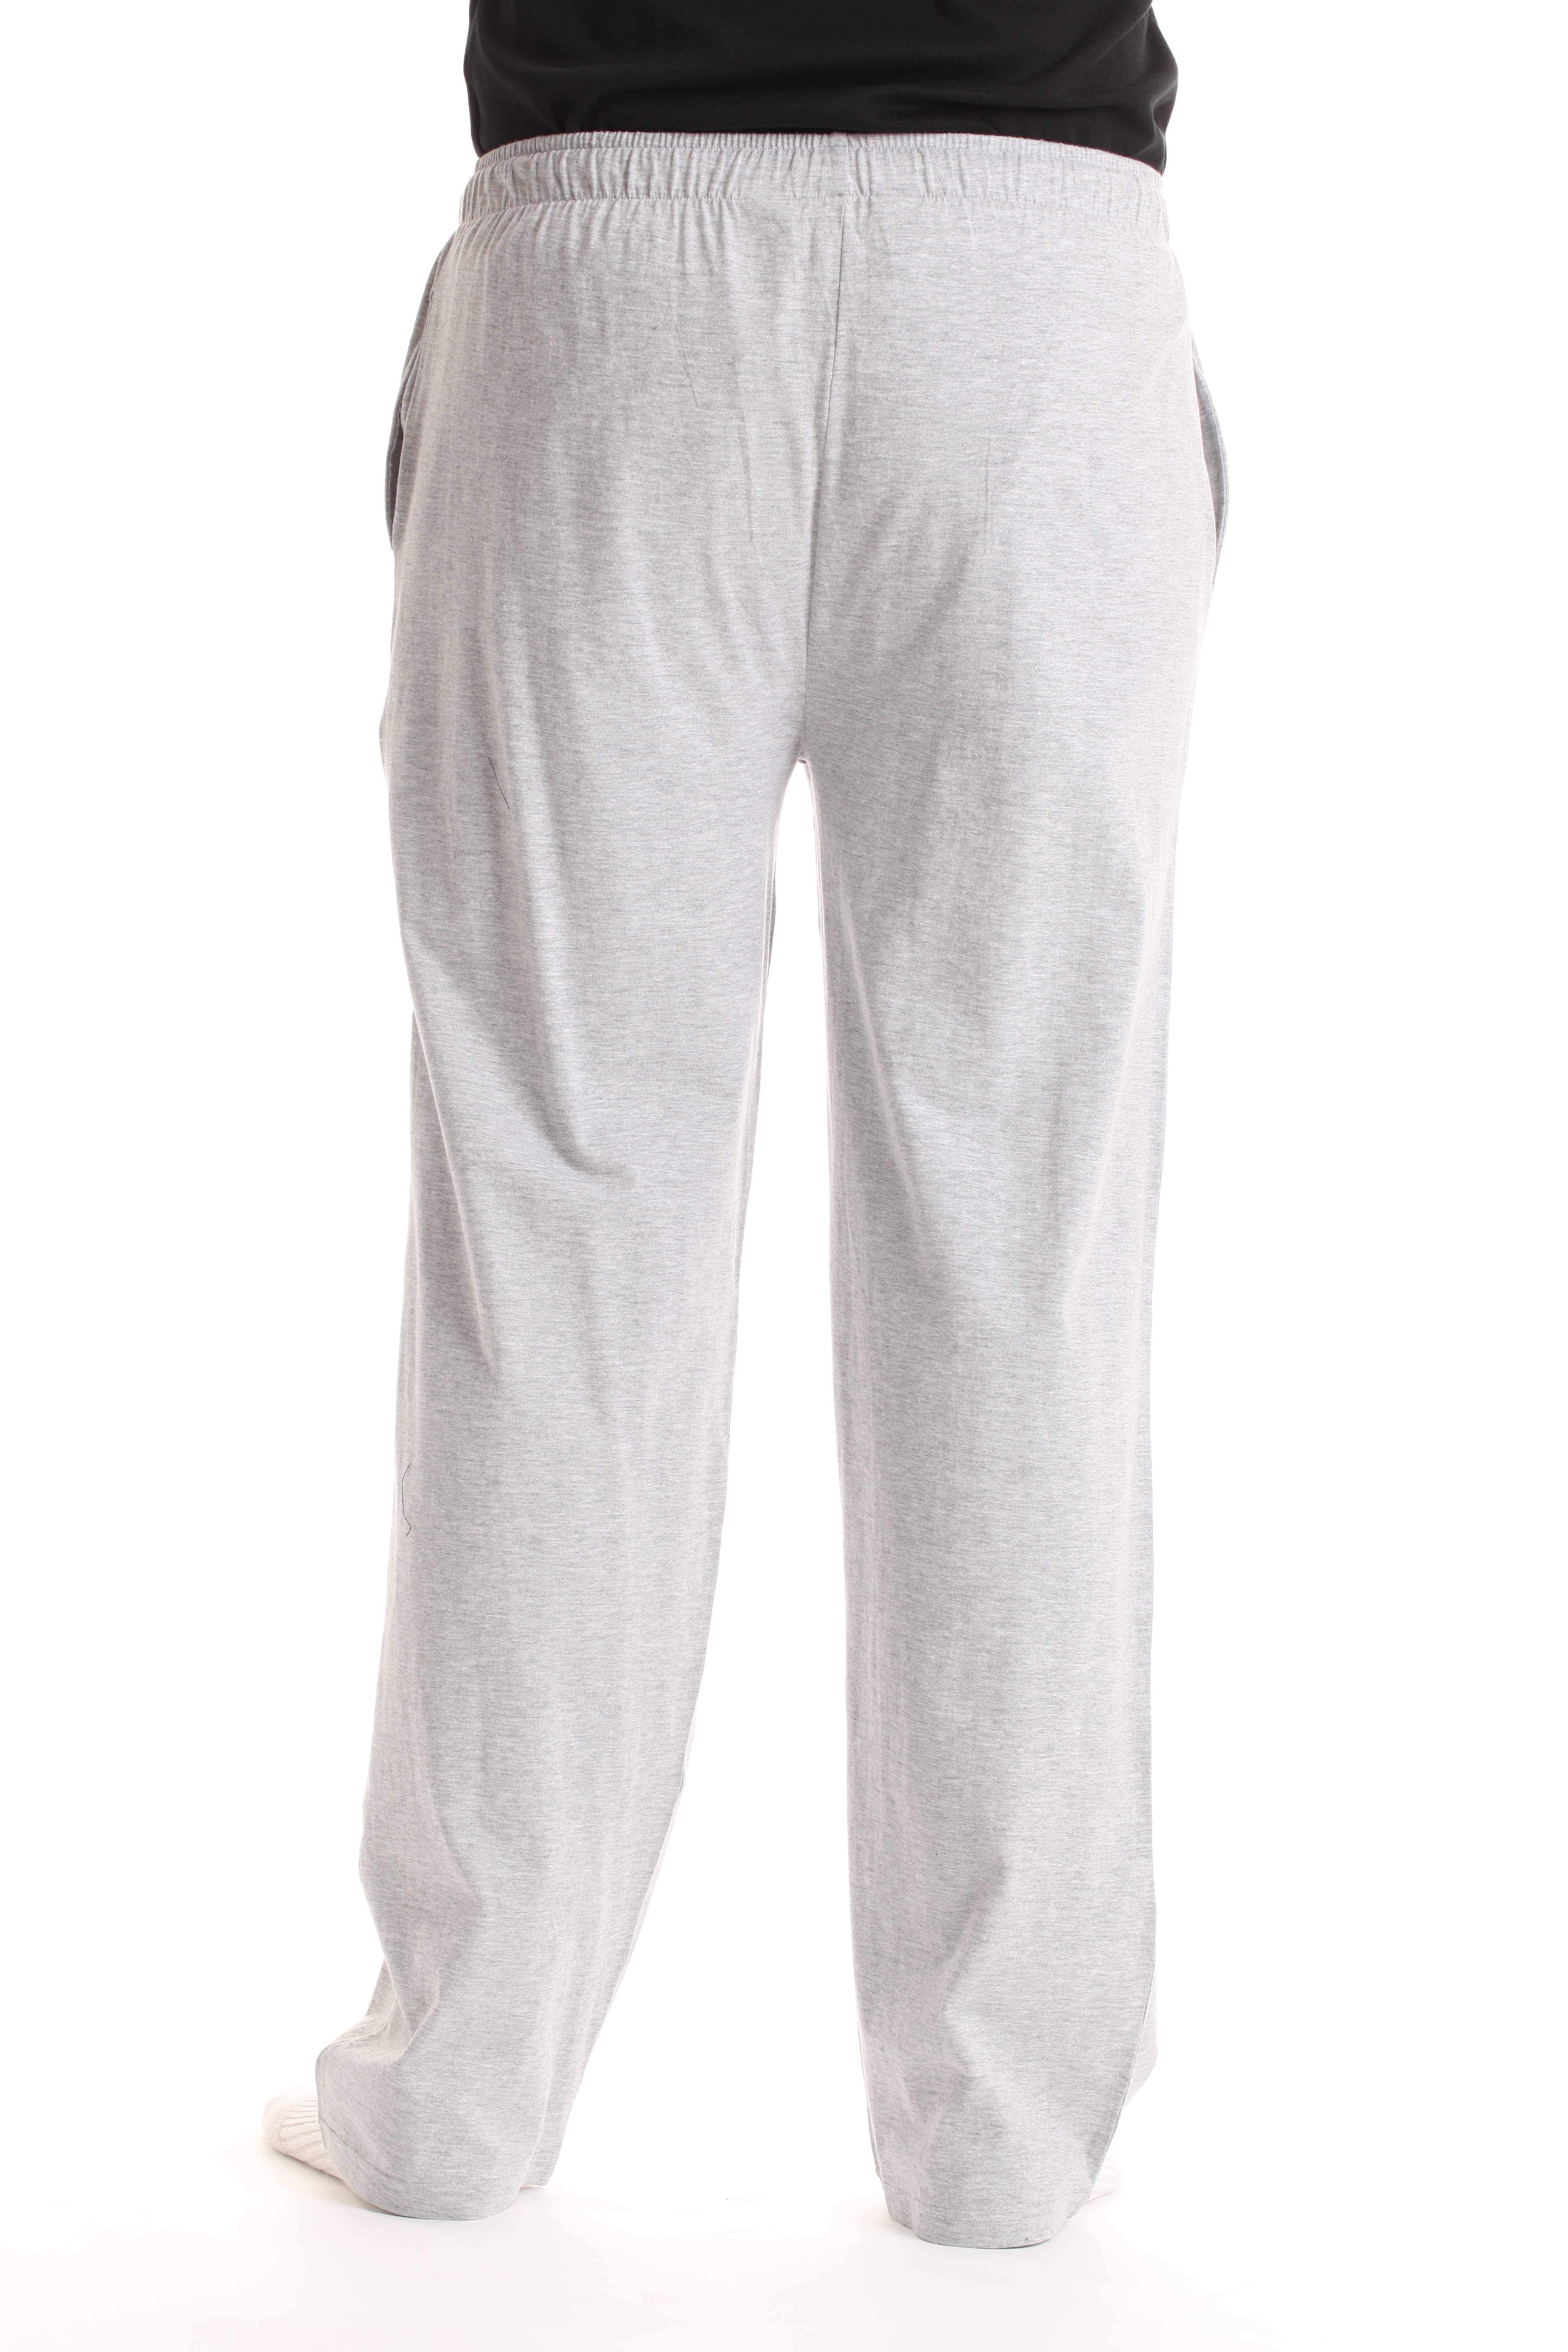 At The Buzzer Mens Pajama Pant